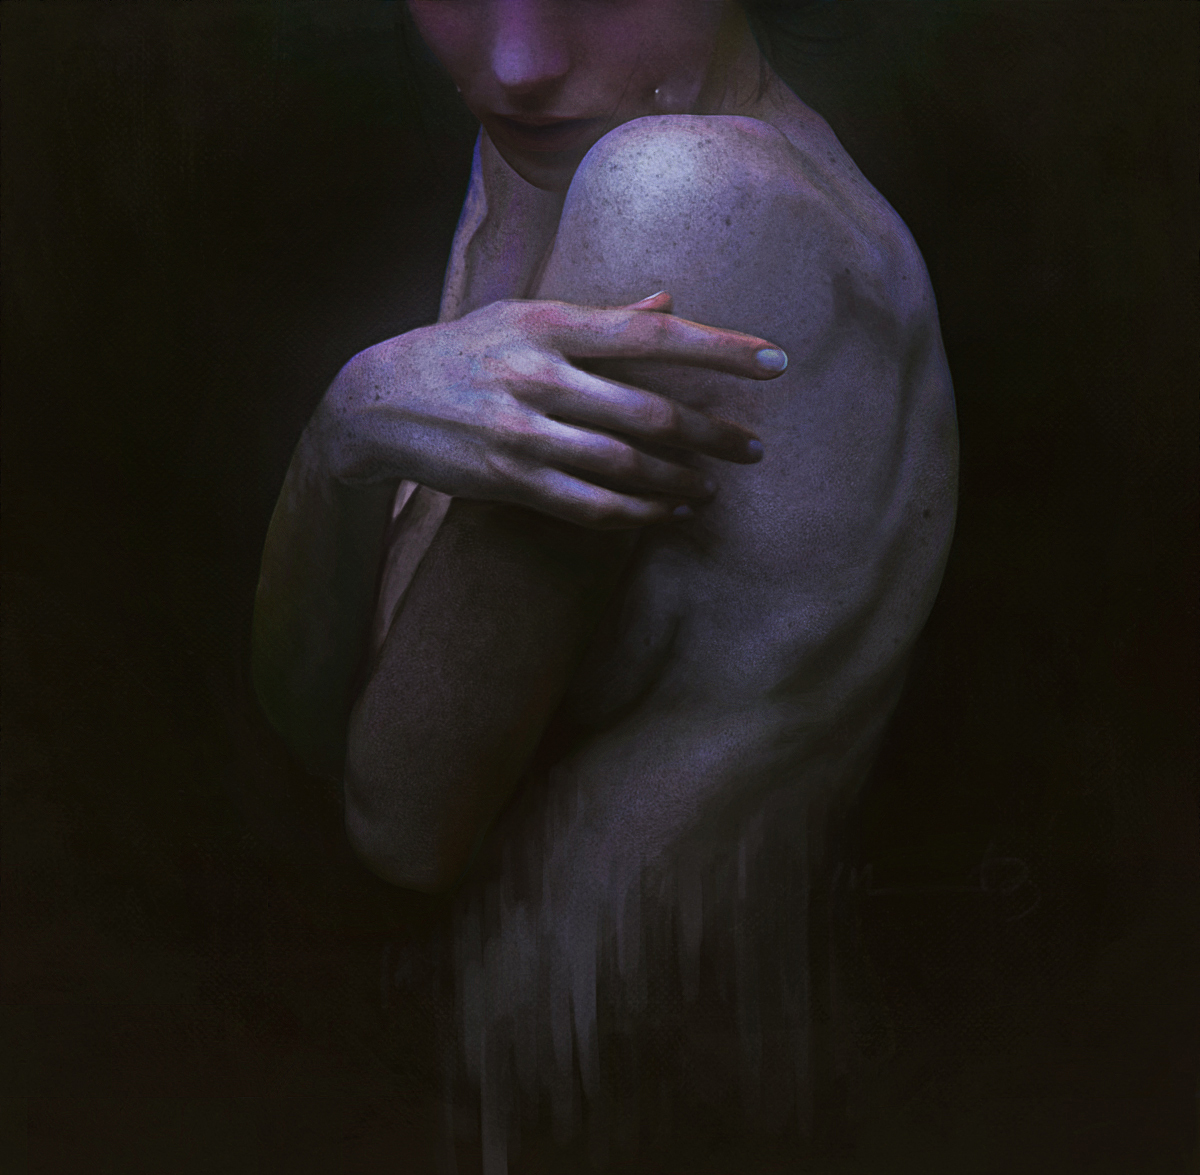 Isabella Morawetz, Maelstrom, Digital, Painting, Dark, Photoshop, Wacom